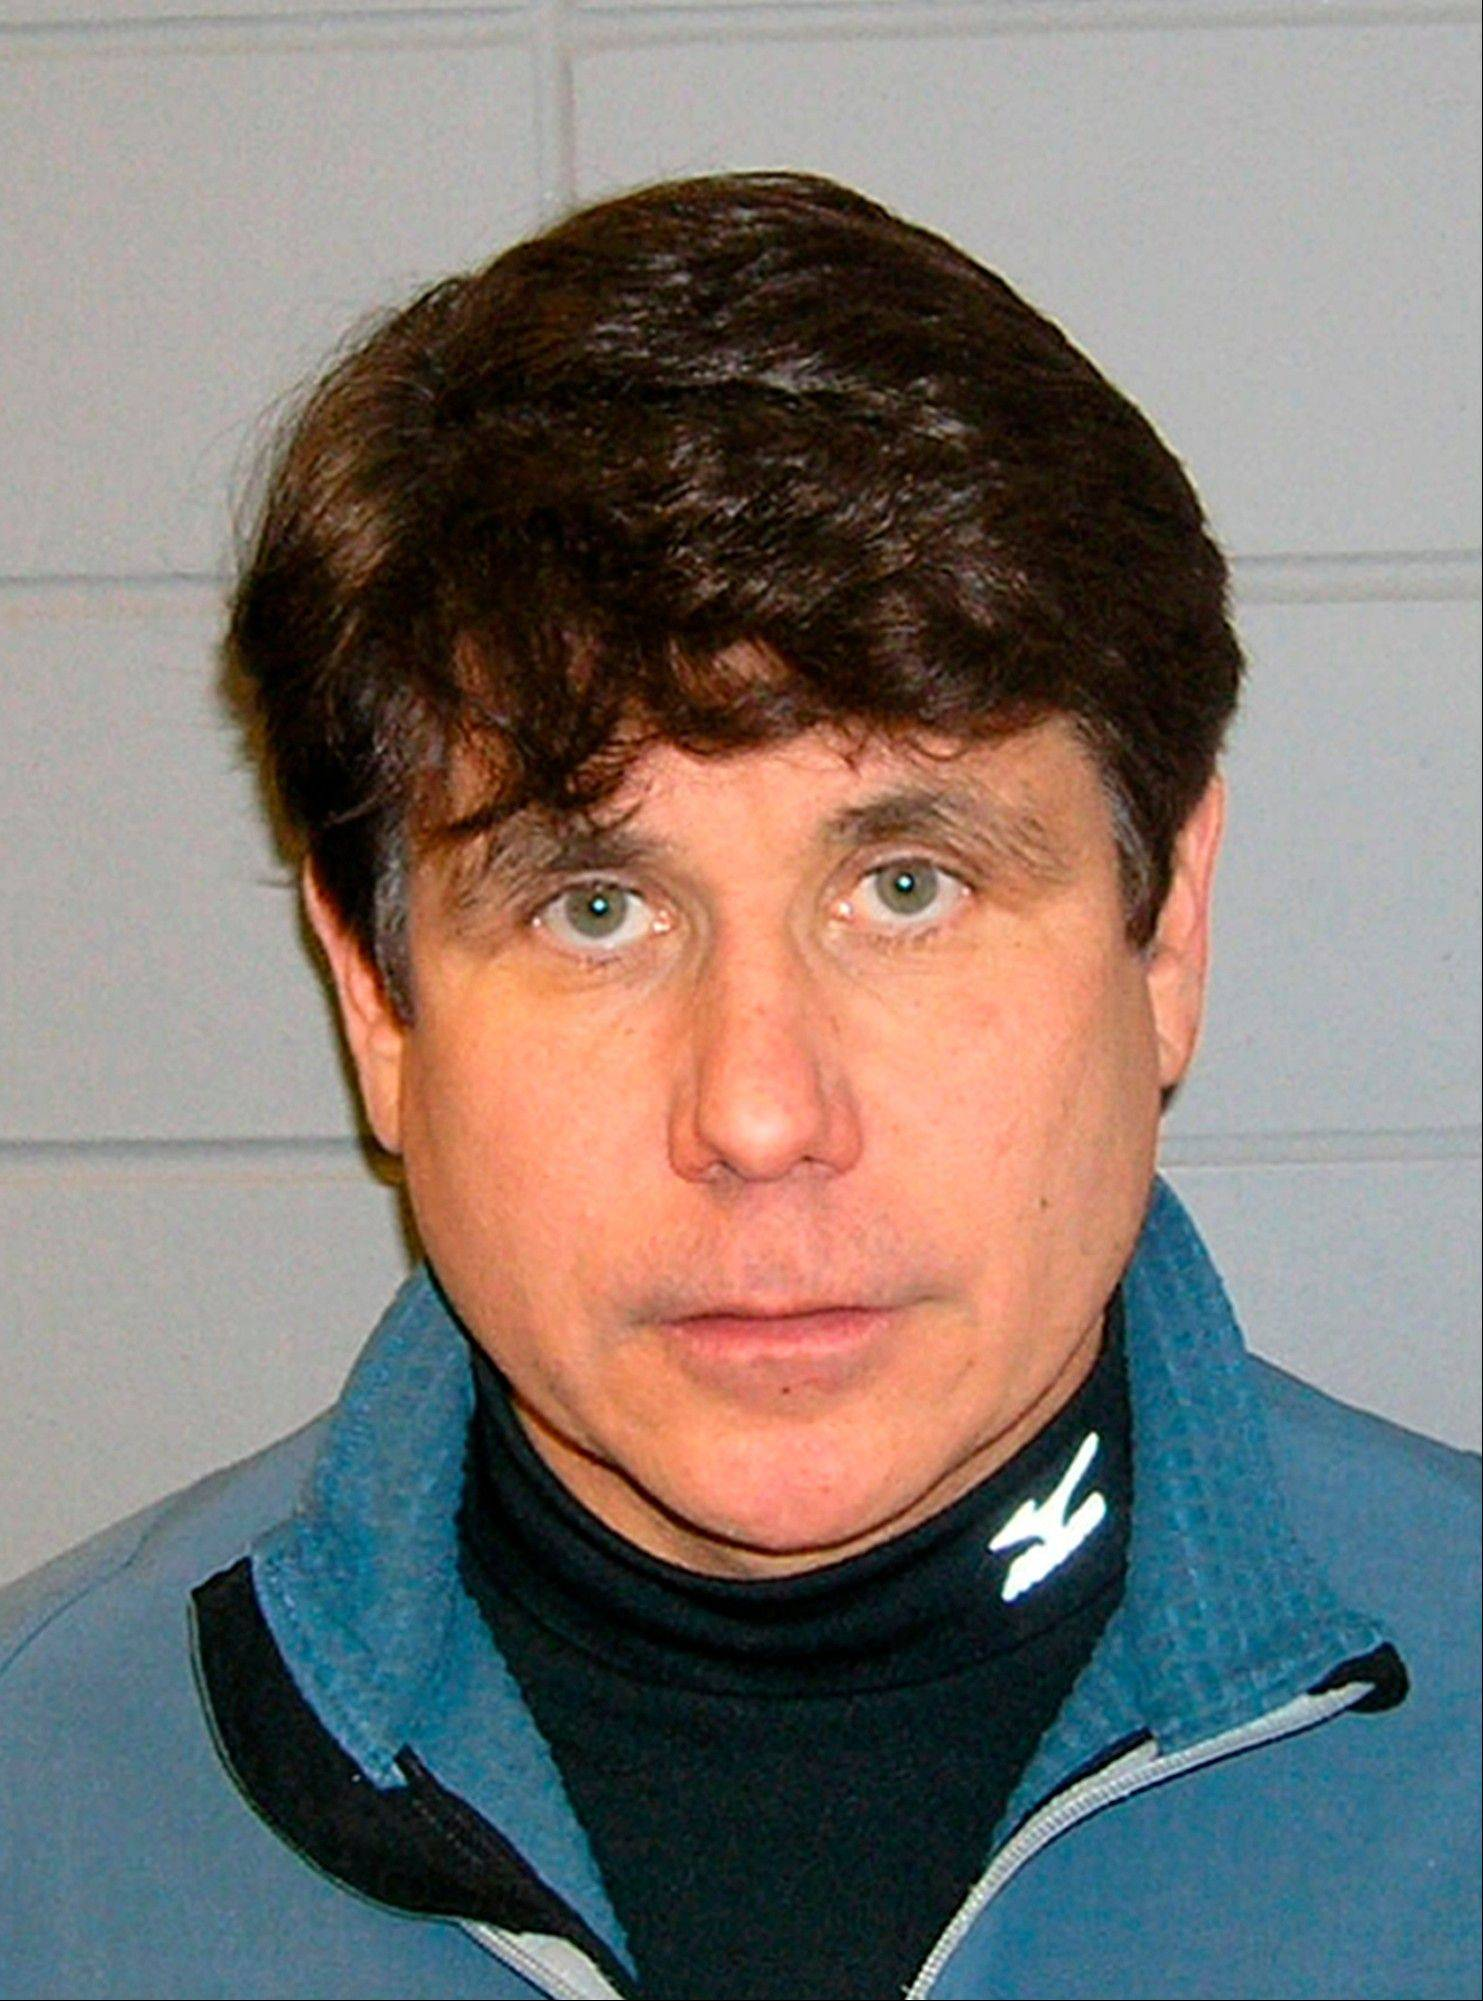 Rod Blagojevich was convicted of numerous corruption charges in 2011, including allegations that he tried to sell or trade President Barack Obama�s old Senate seat.